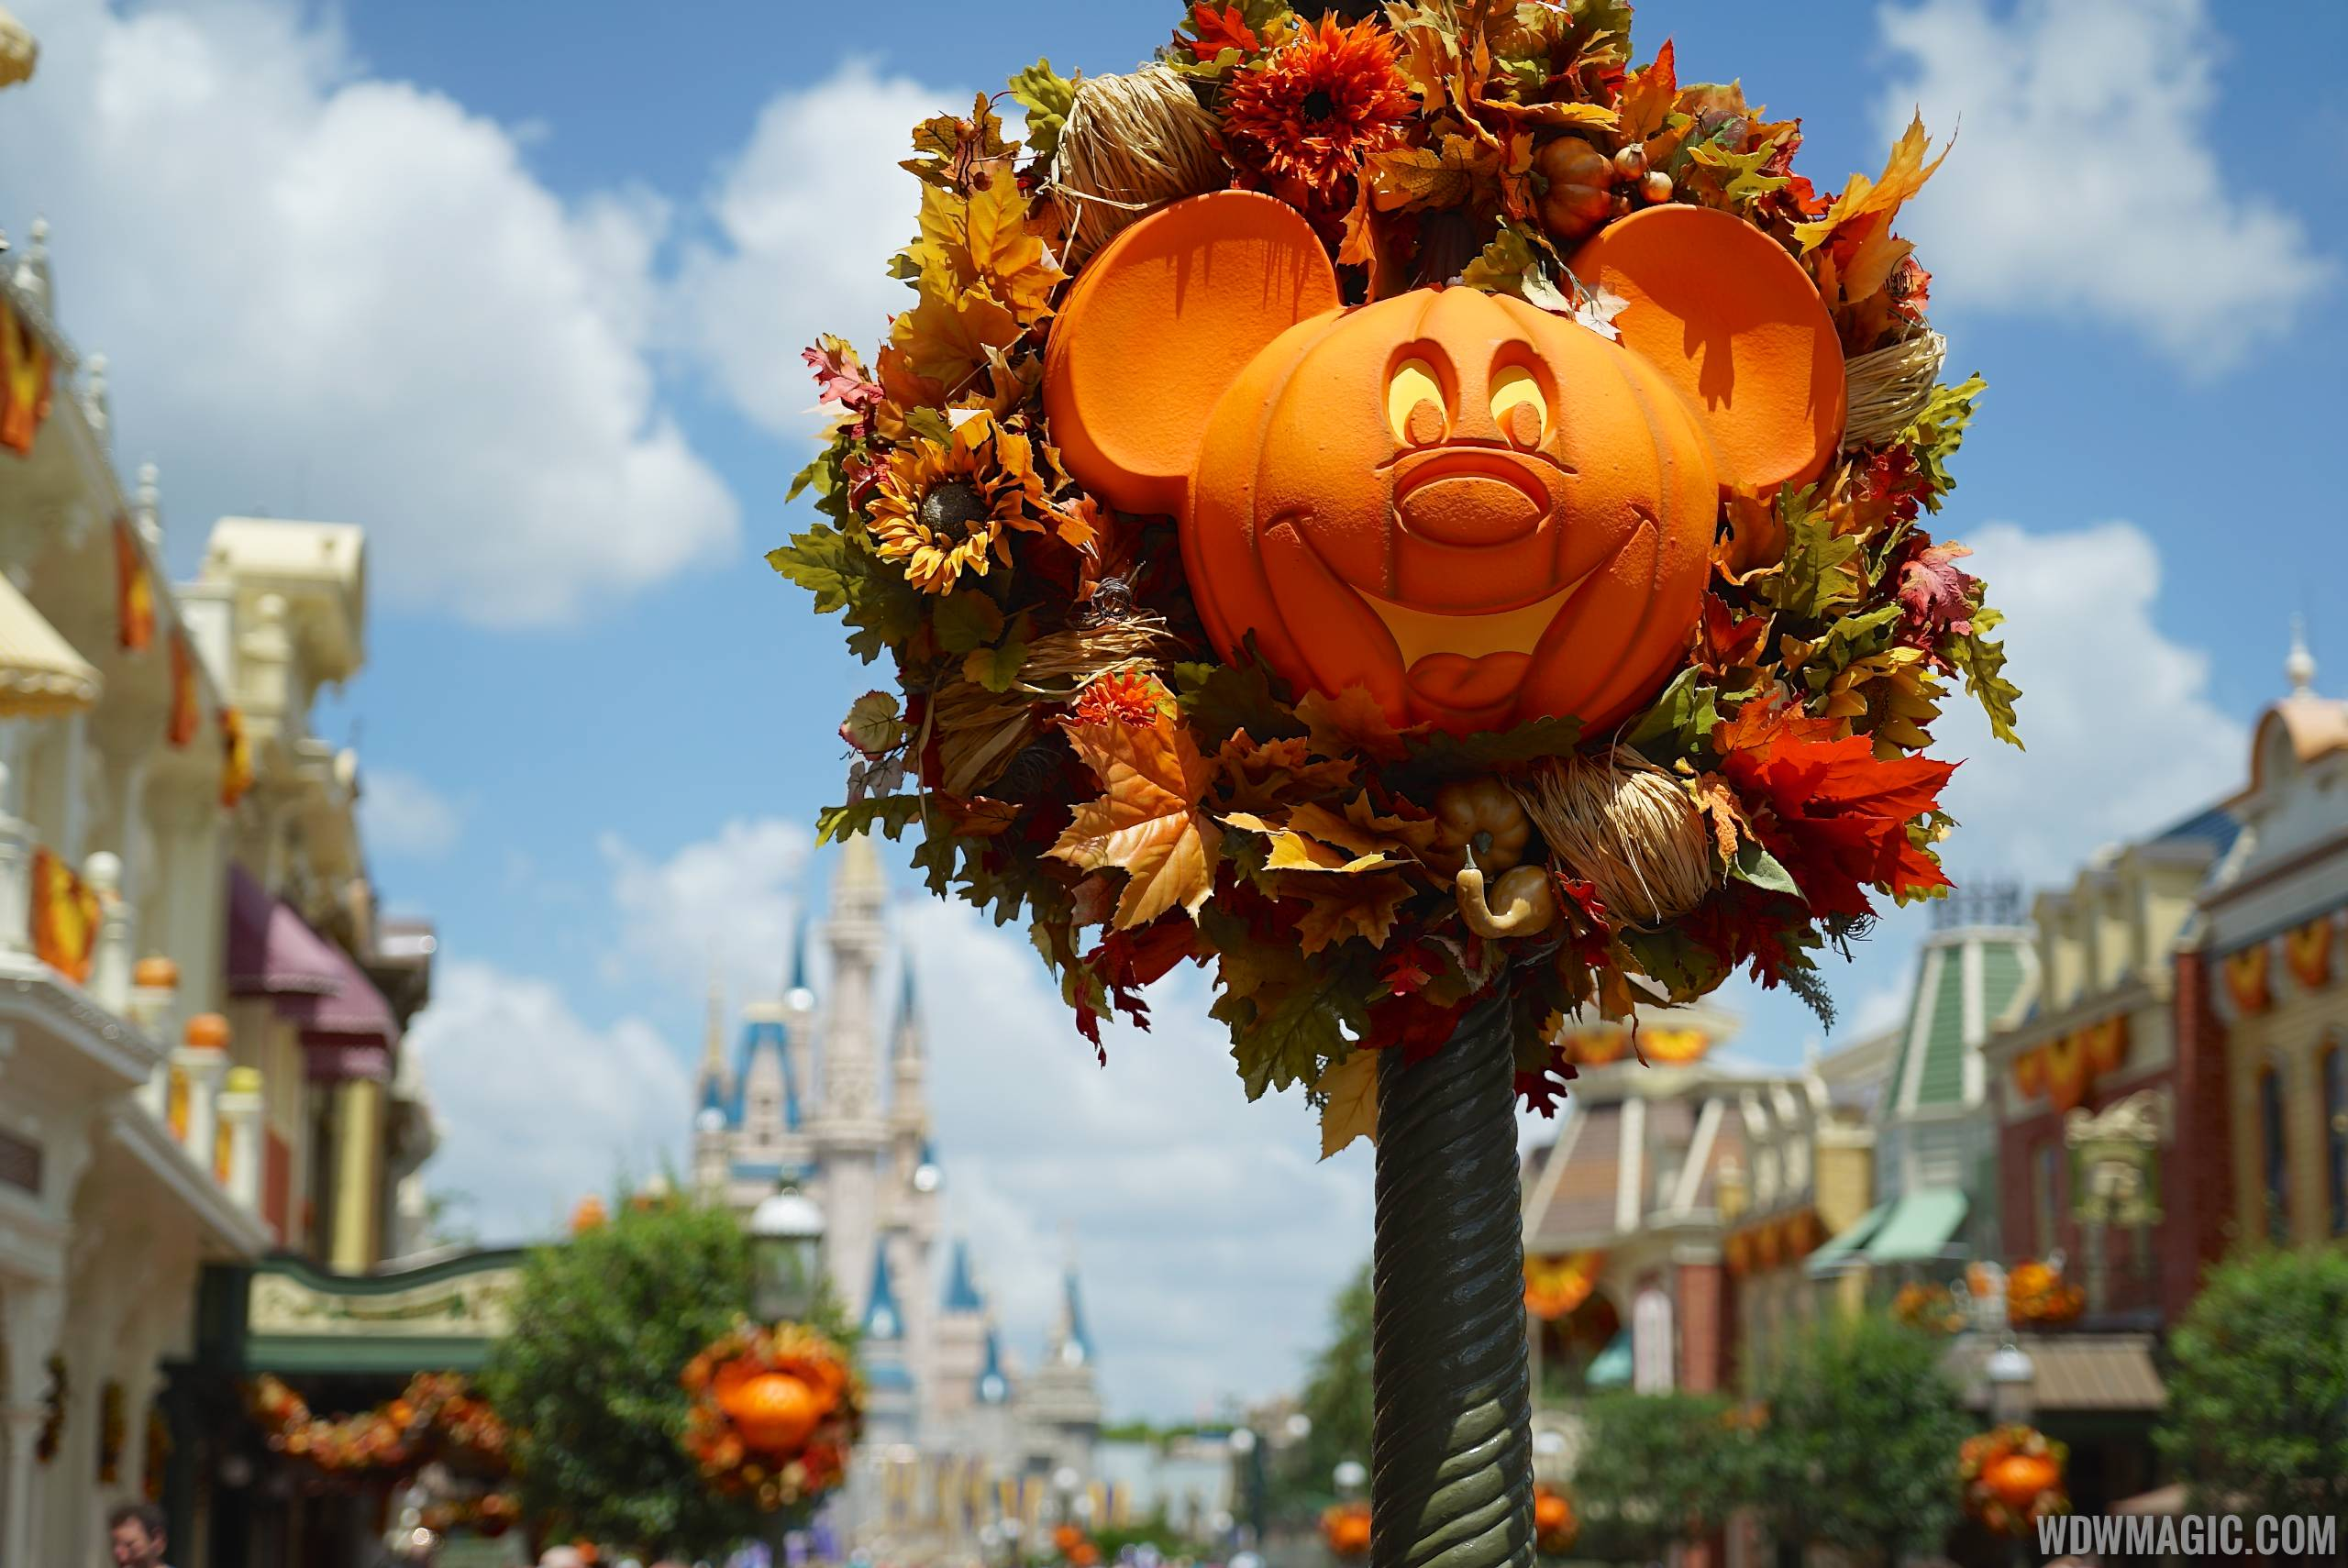 magic kingdoms fall halloween decorations 2014 photo 26 of 37